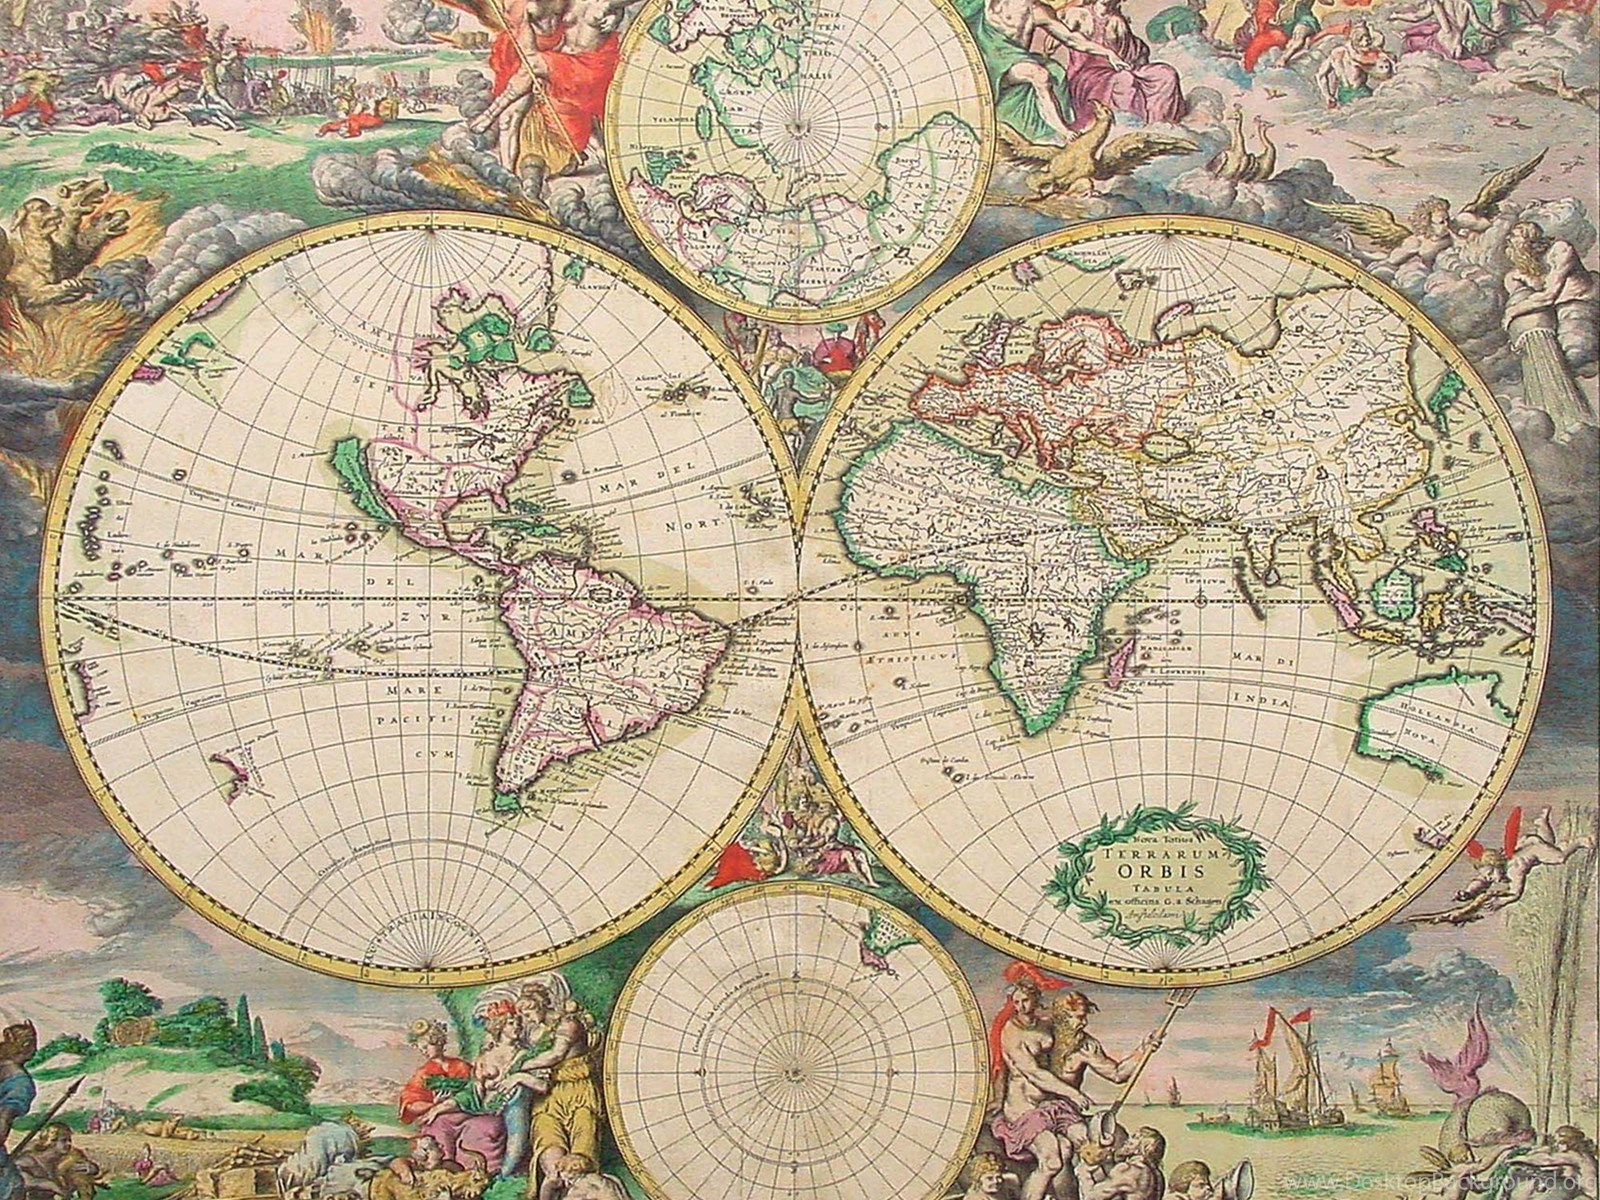 National geographic world map wallpapers desktop background fullscreen gumiabroncs Image collections